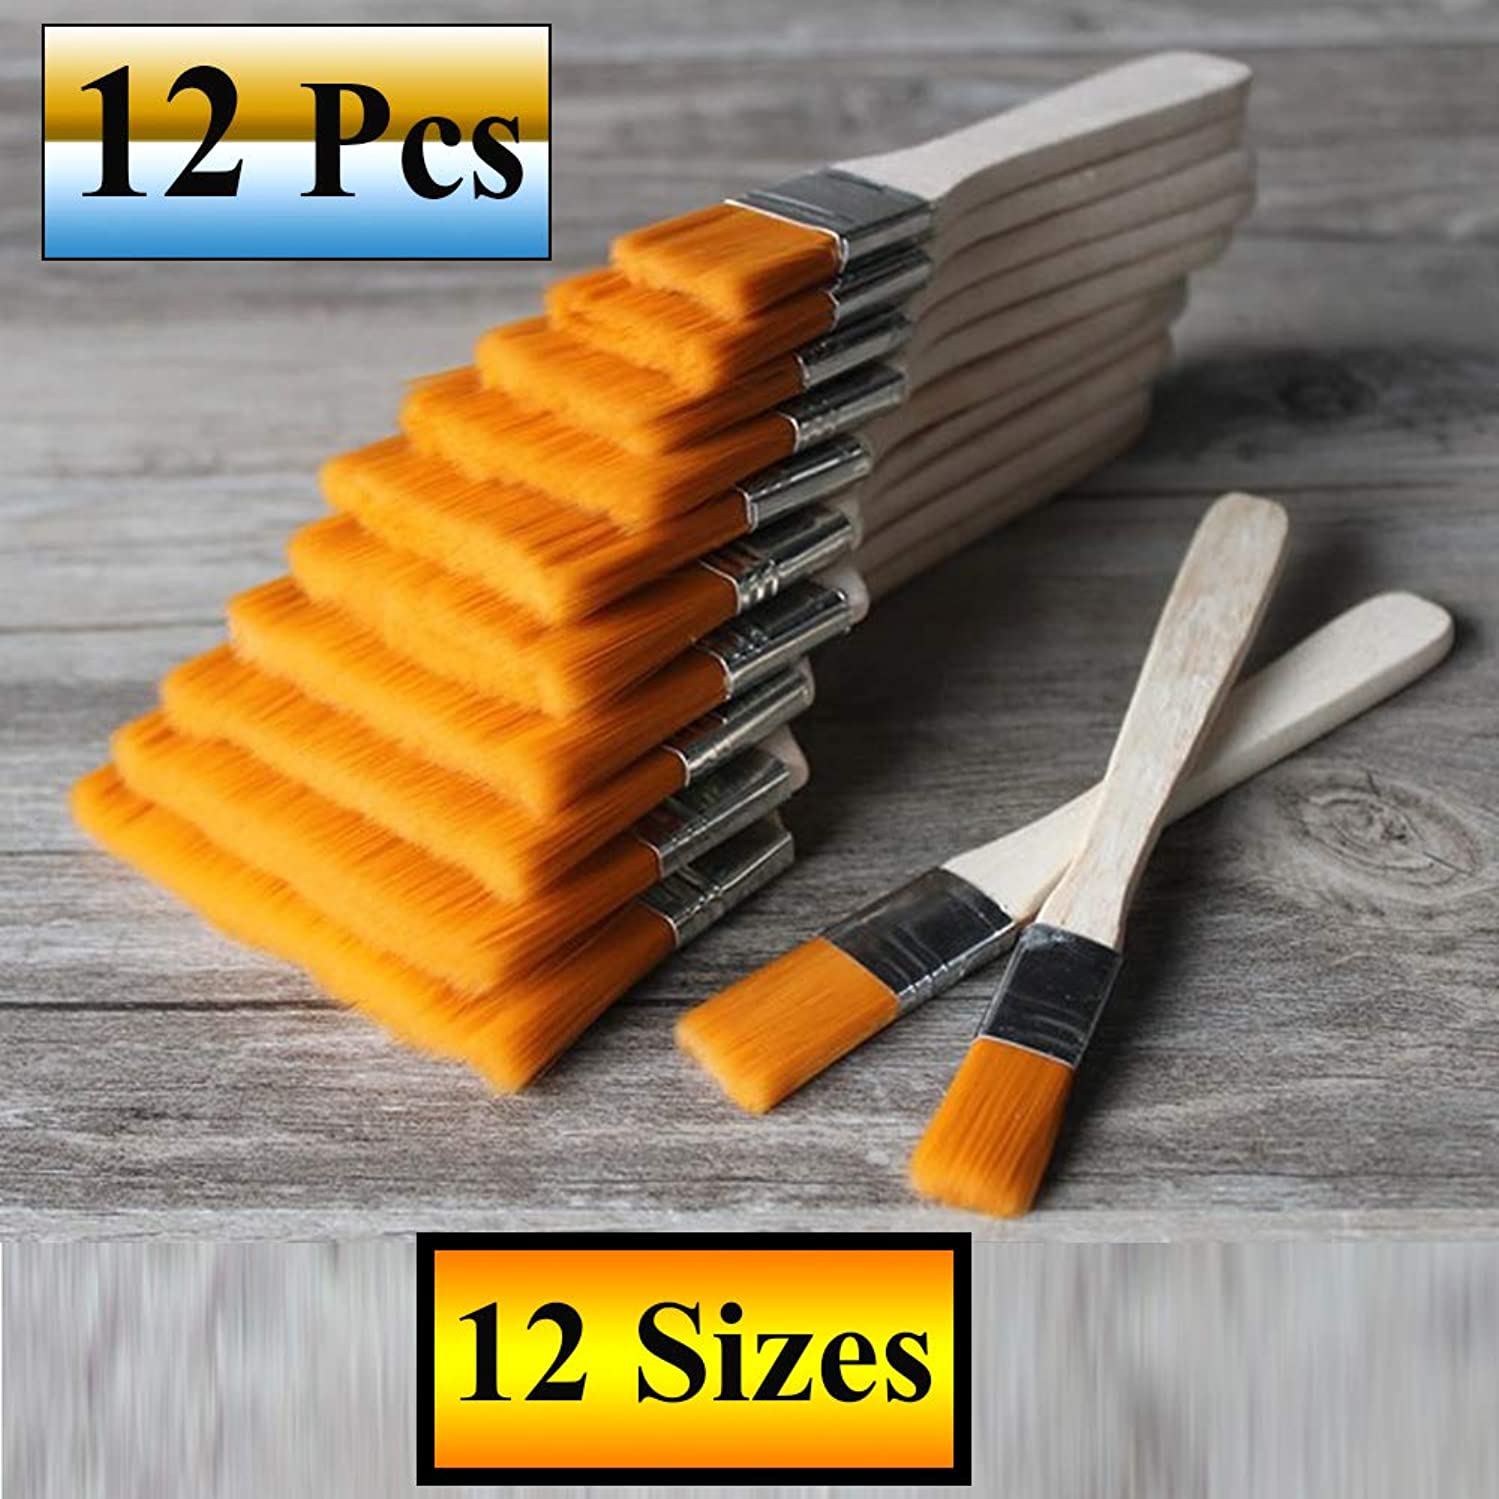 12 Pcs Paint Brushes Set for Wall Painting